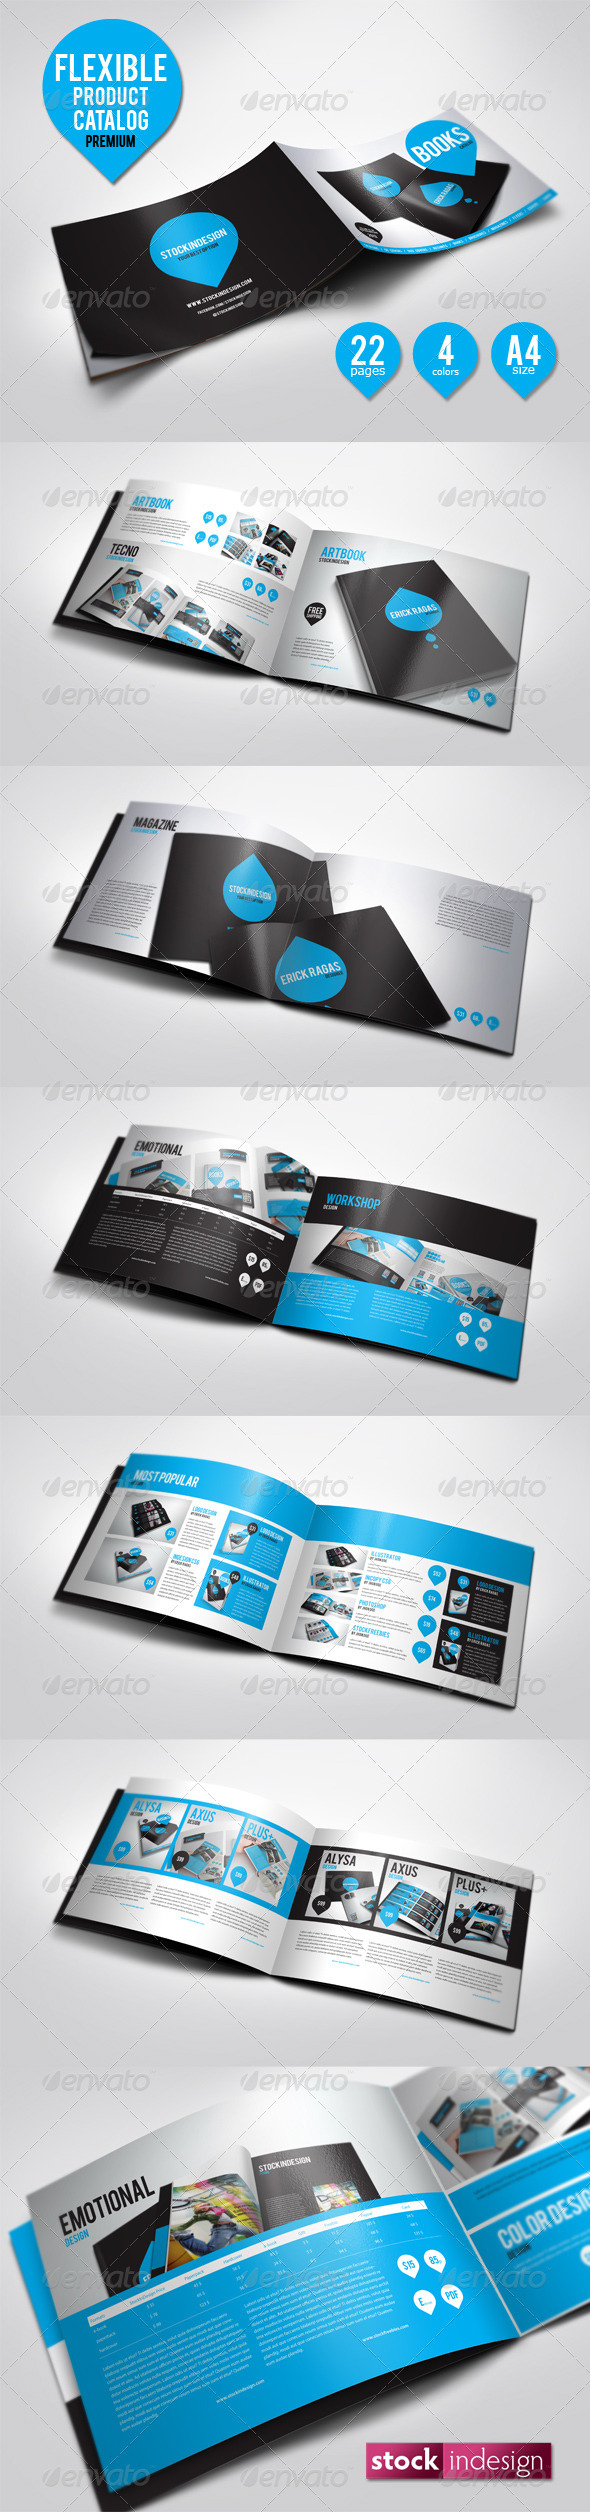 Flexible Product Catalog - Unlimited Colors - Corporate Brochures